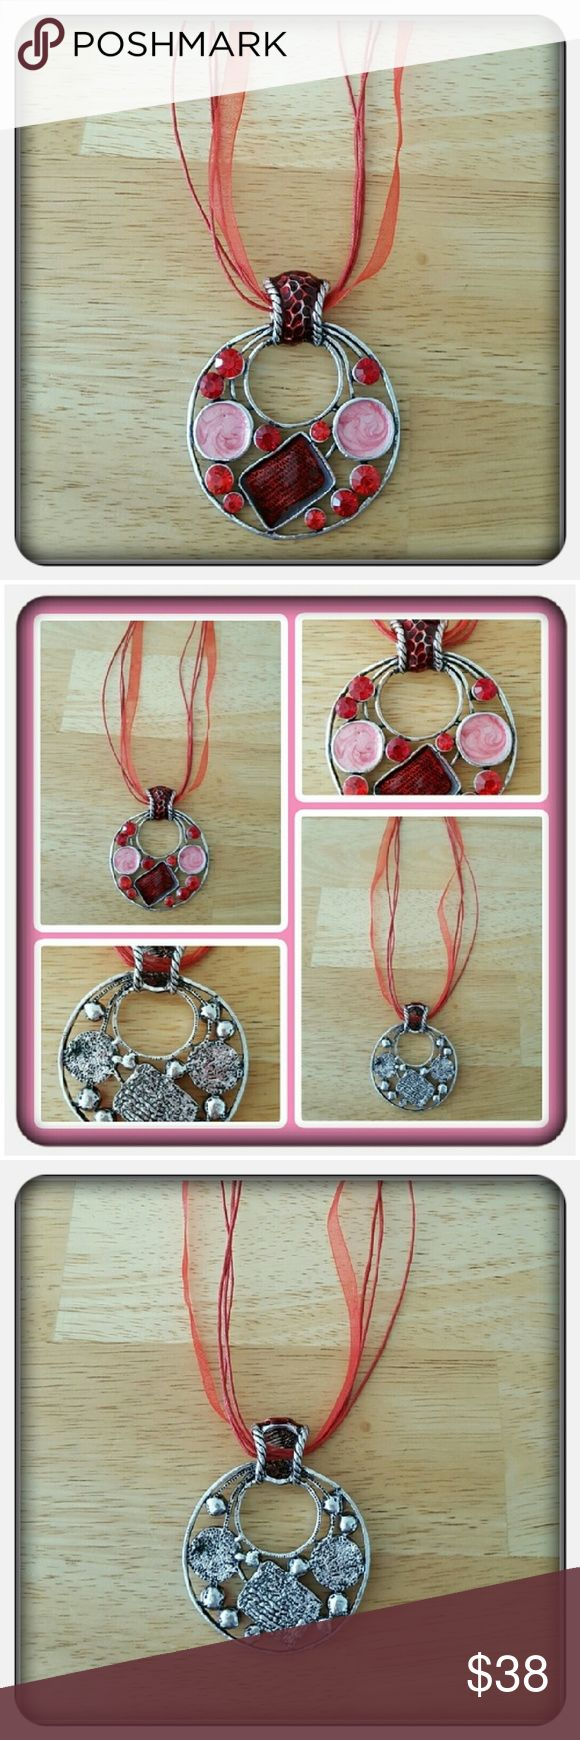 NWOT Woman's Red Handmade Cabachon Necklace Brand New Never Worn Woman's Handmade Cabachon Necklace. This Beauty Is Made With Red & Pink Enamel. The Metal Is Silverstone And The Pendant Hangs From Red Ribbon Very Unique Great Piece For Any Jewelry Lover Or Gift Giving 🚫 PAYPAL 🚫 TRADES 🚫 LOWBALLING Handmade Jewelry Necklaces